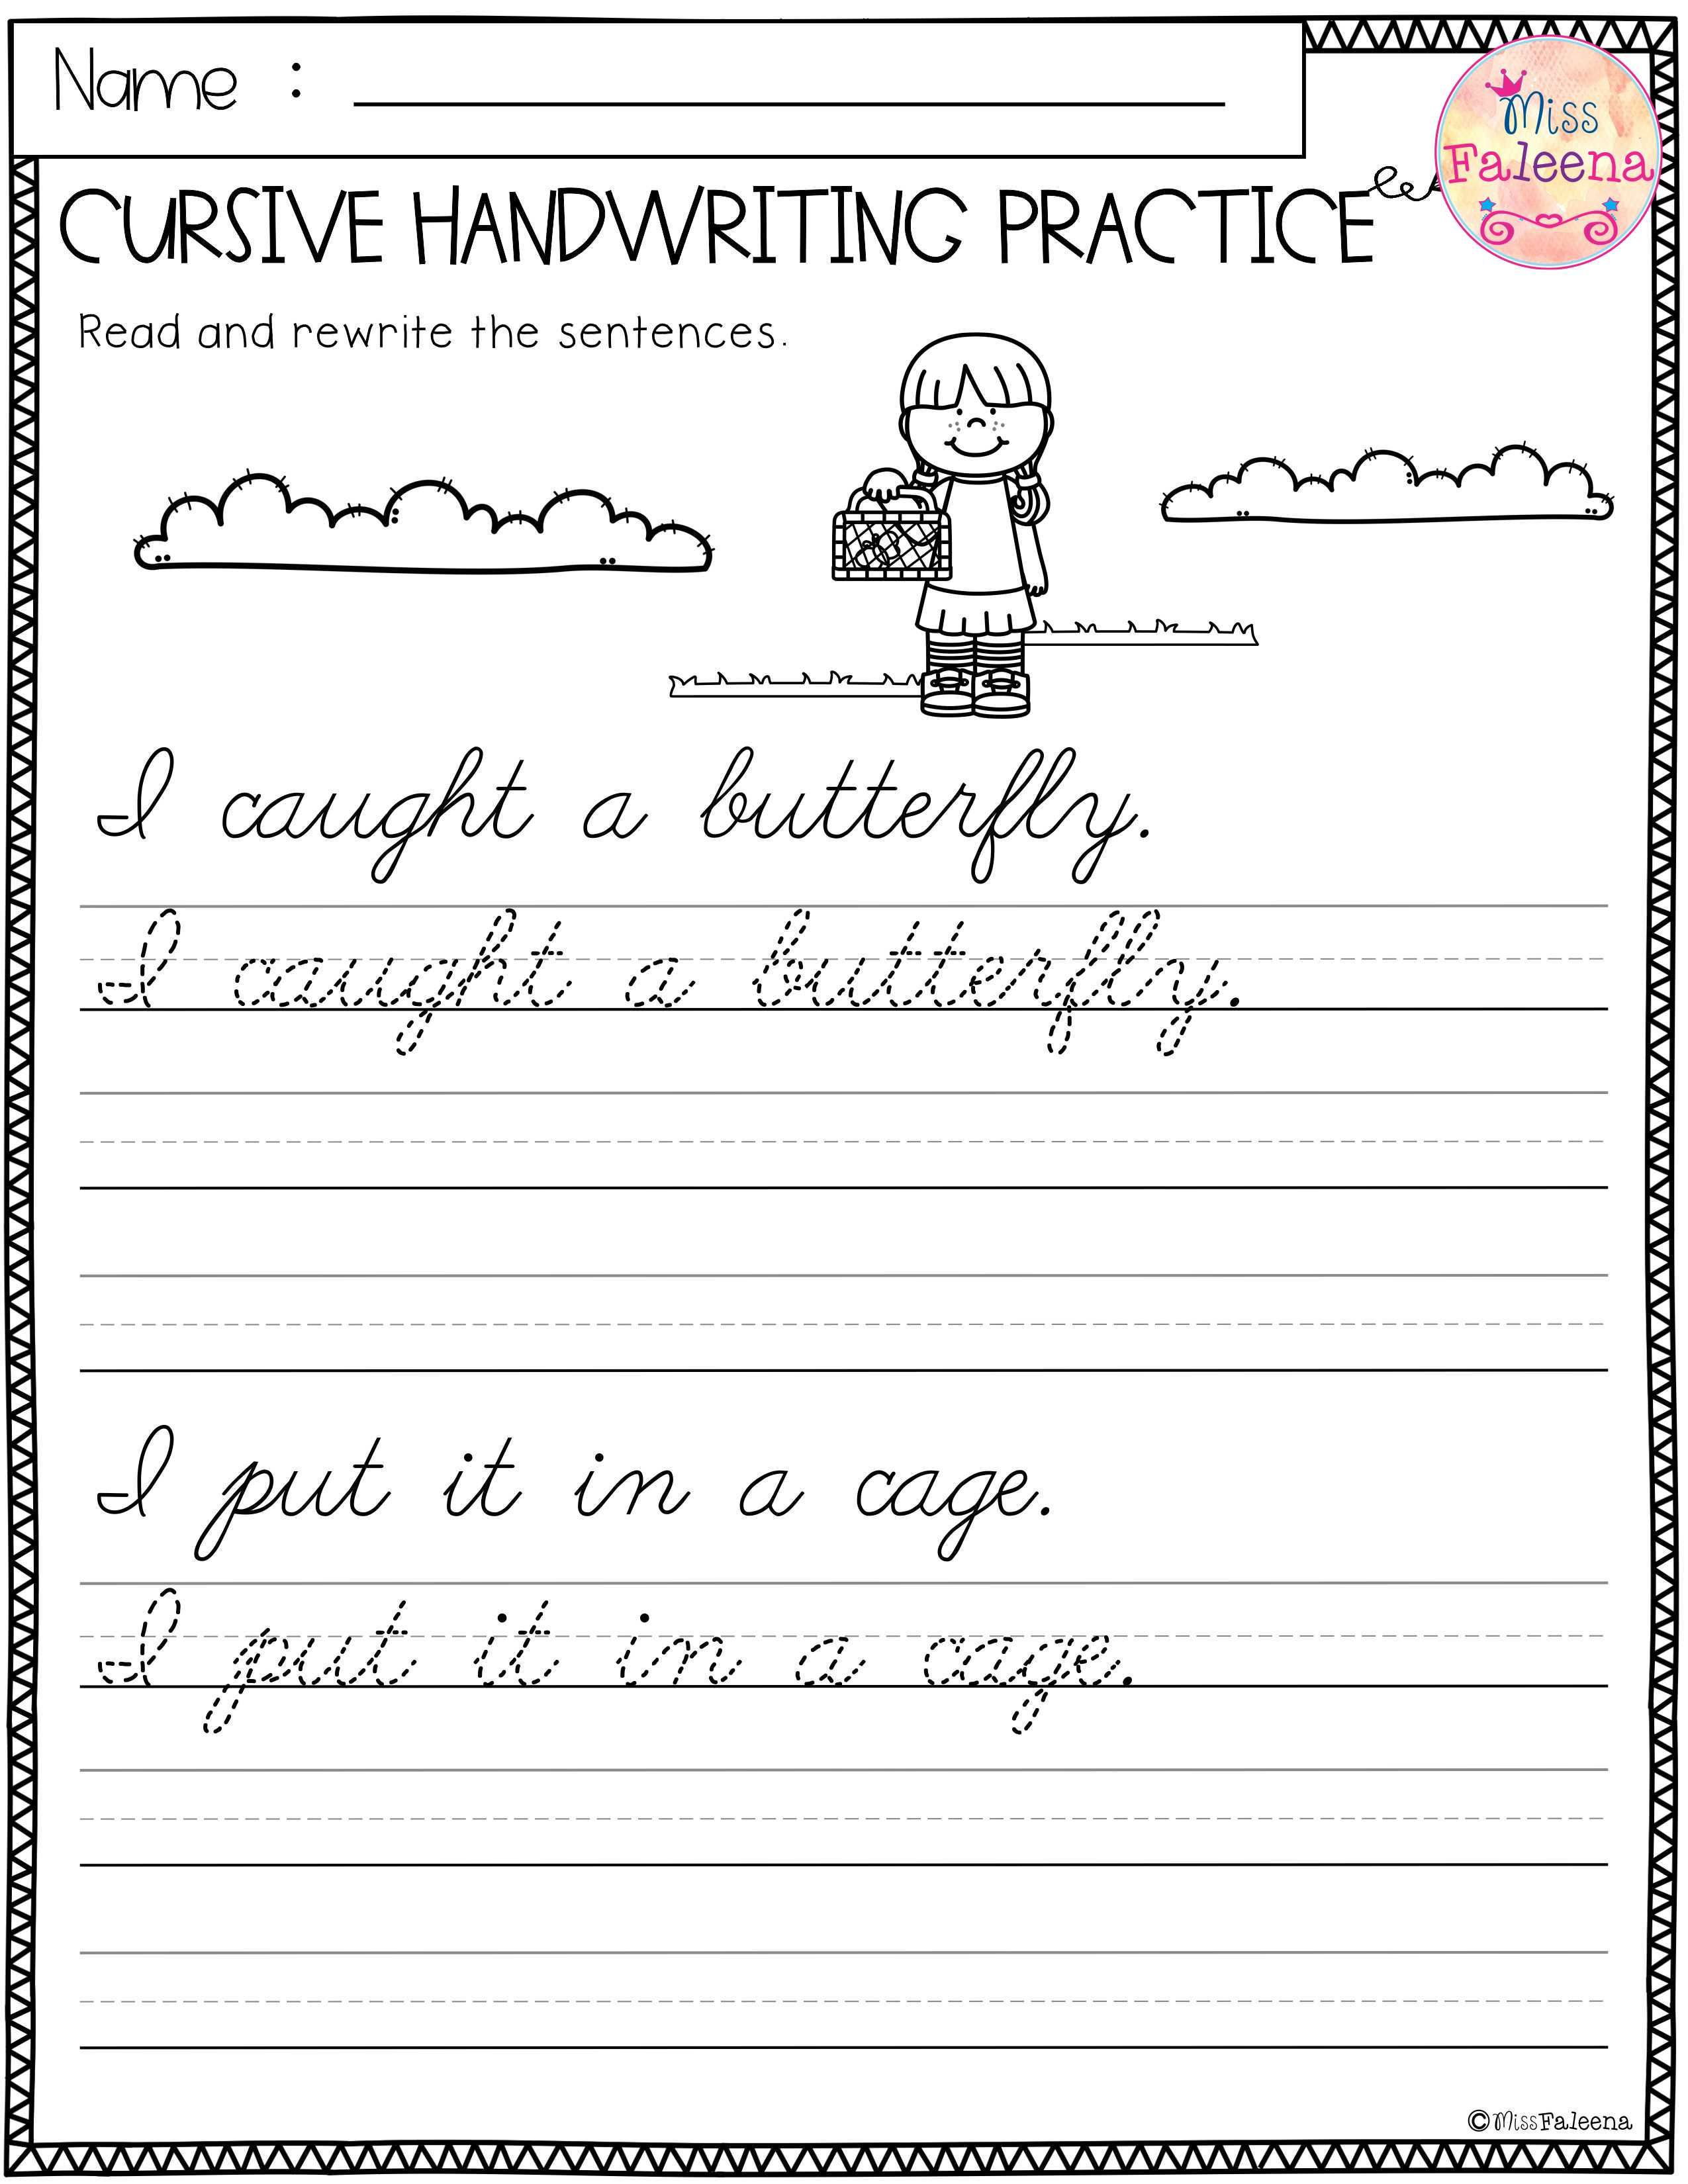 Spring Cursive Handwriting Practice With Images Cursive